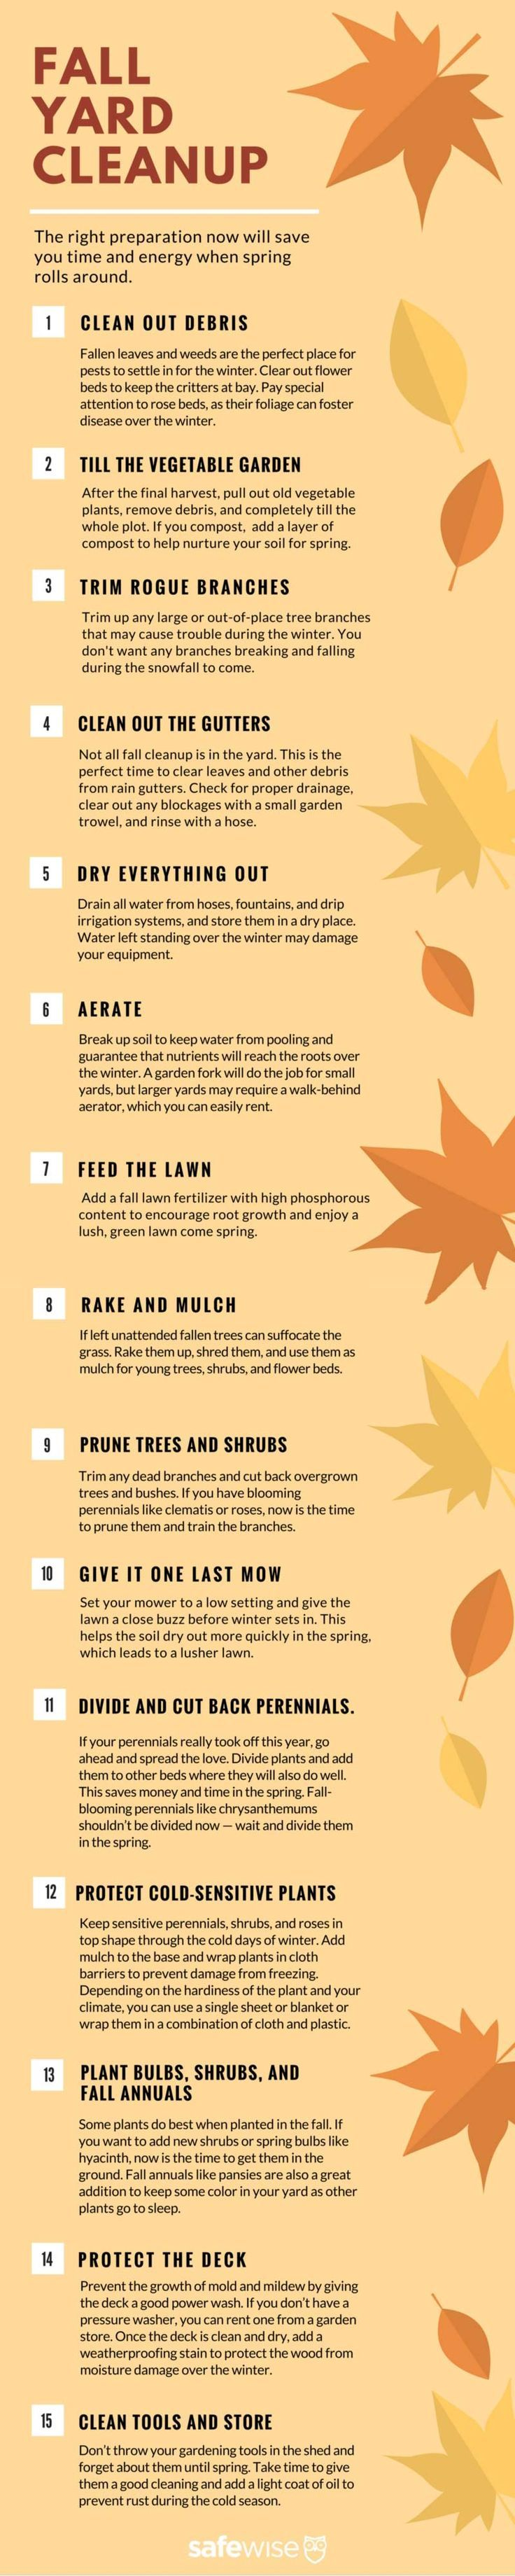 188 Best Fall Ideas For The Home Images On Pinterest